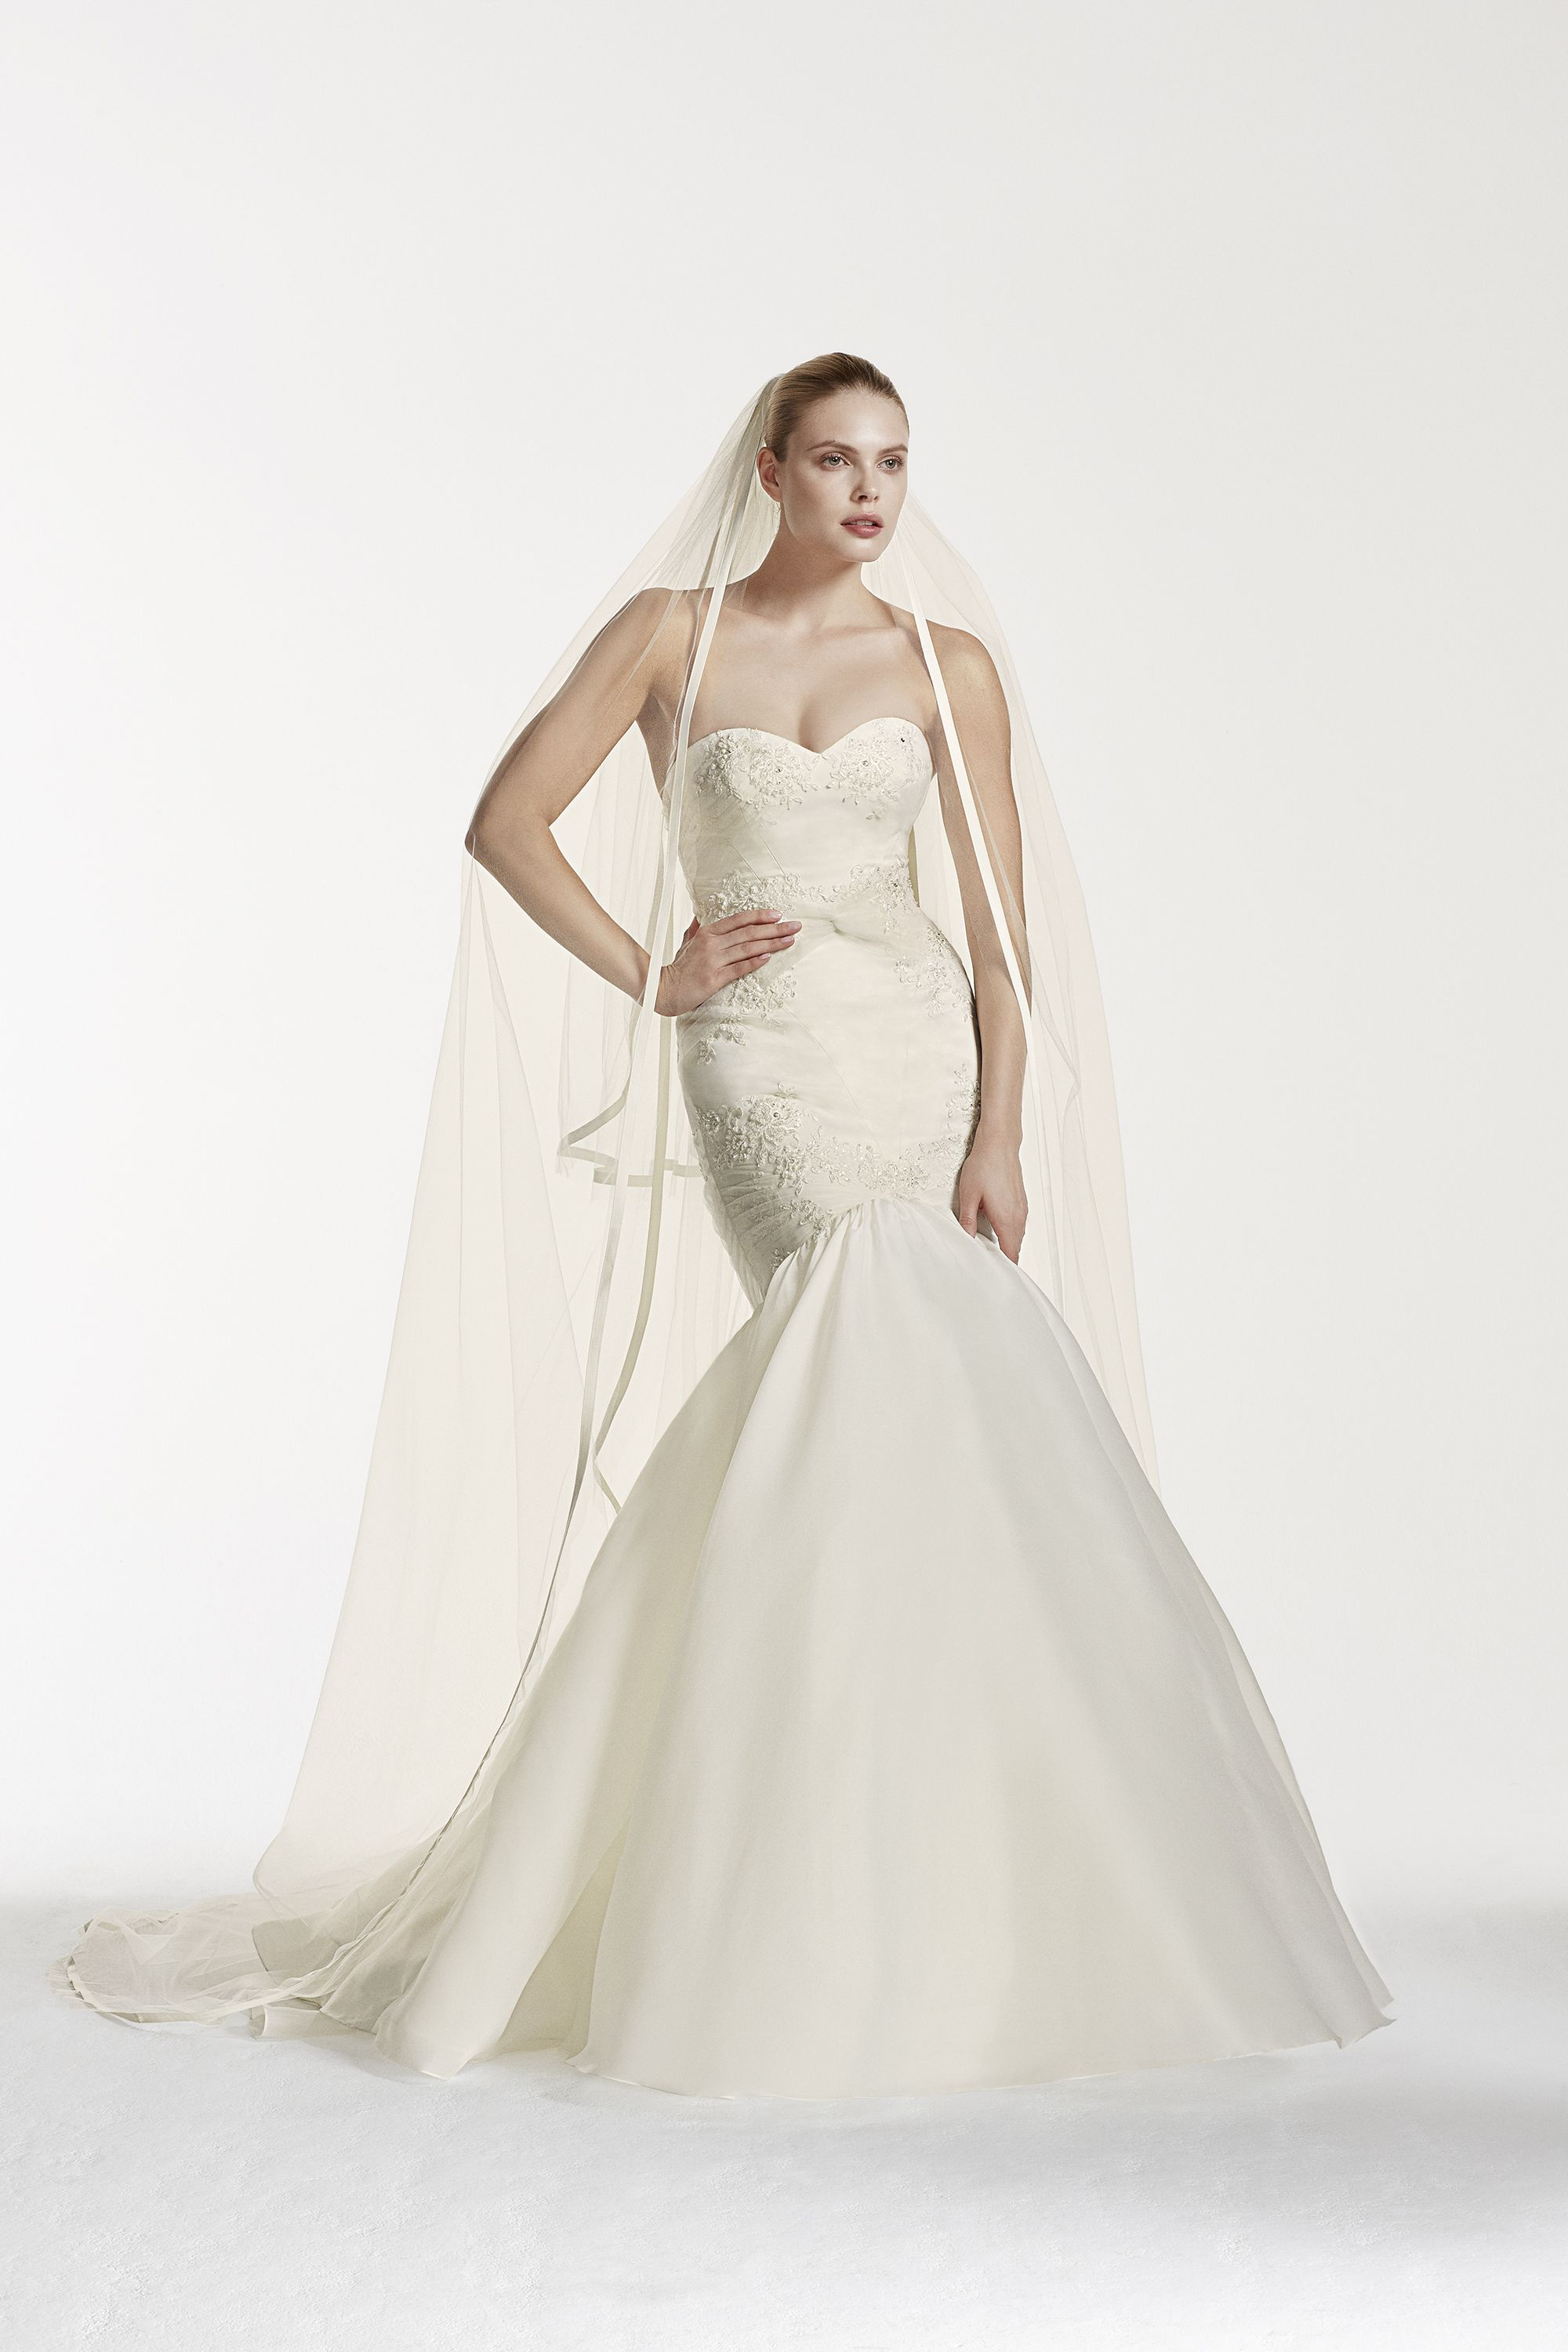 Couture wedding dresses london  Best in Bridal Temperley London Spring   Wedding trends